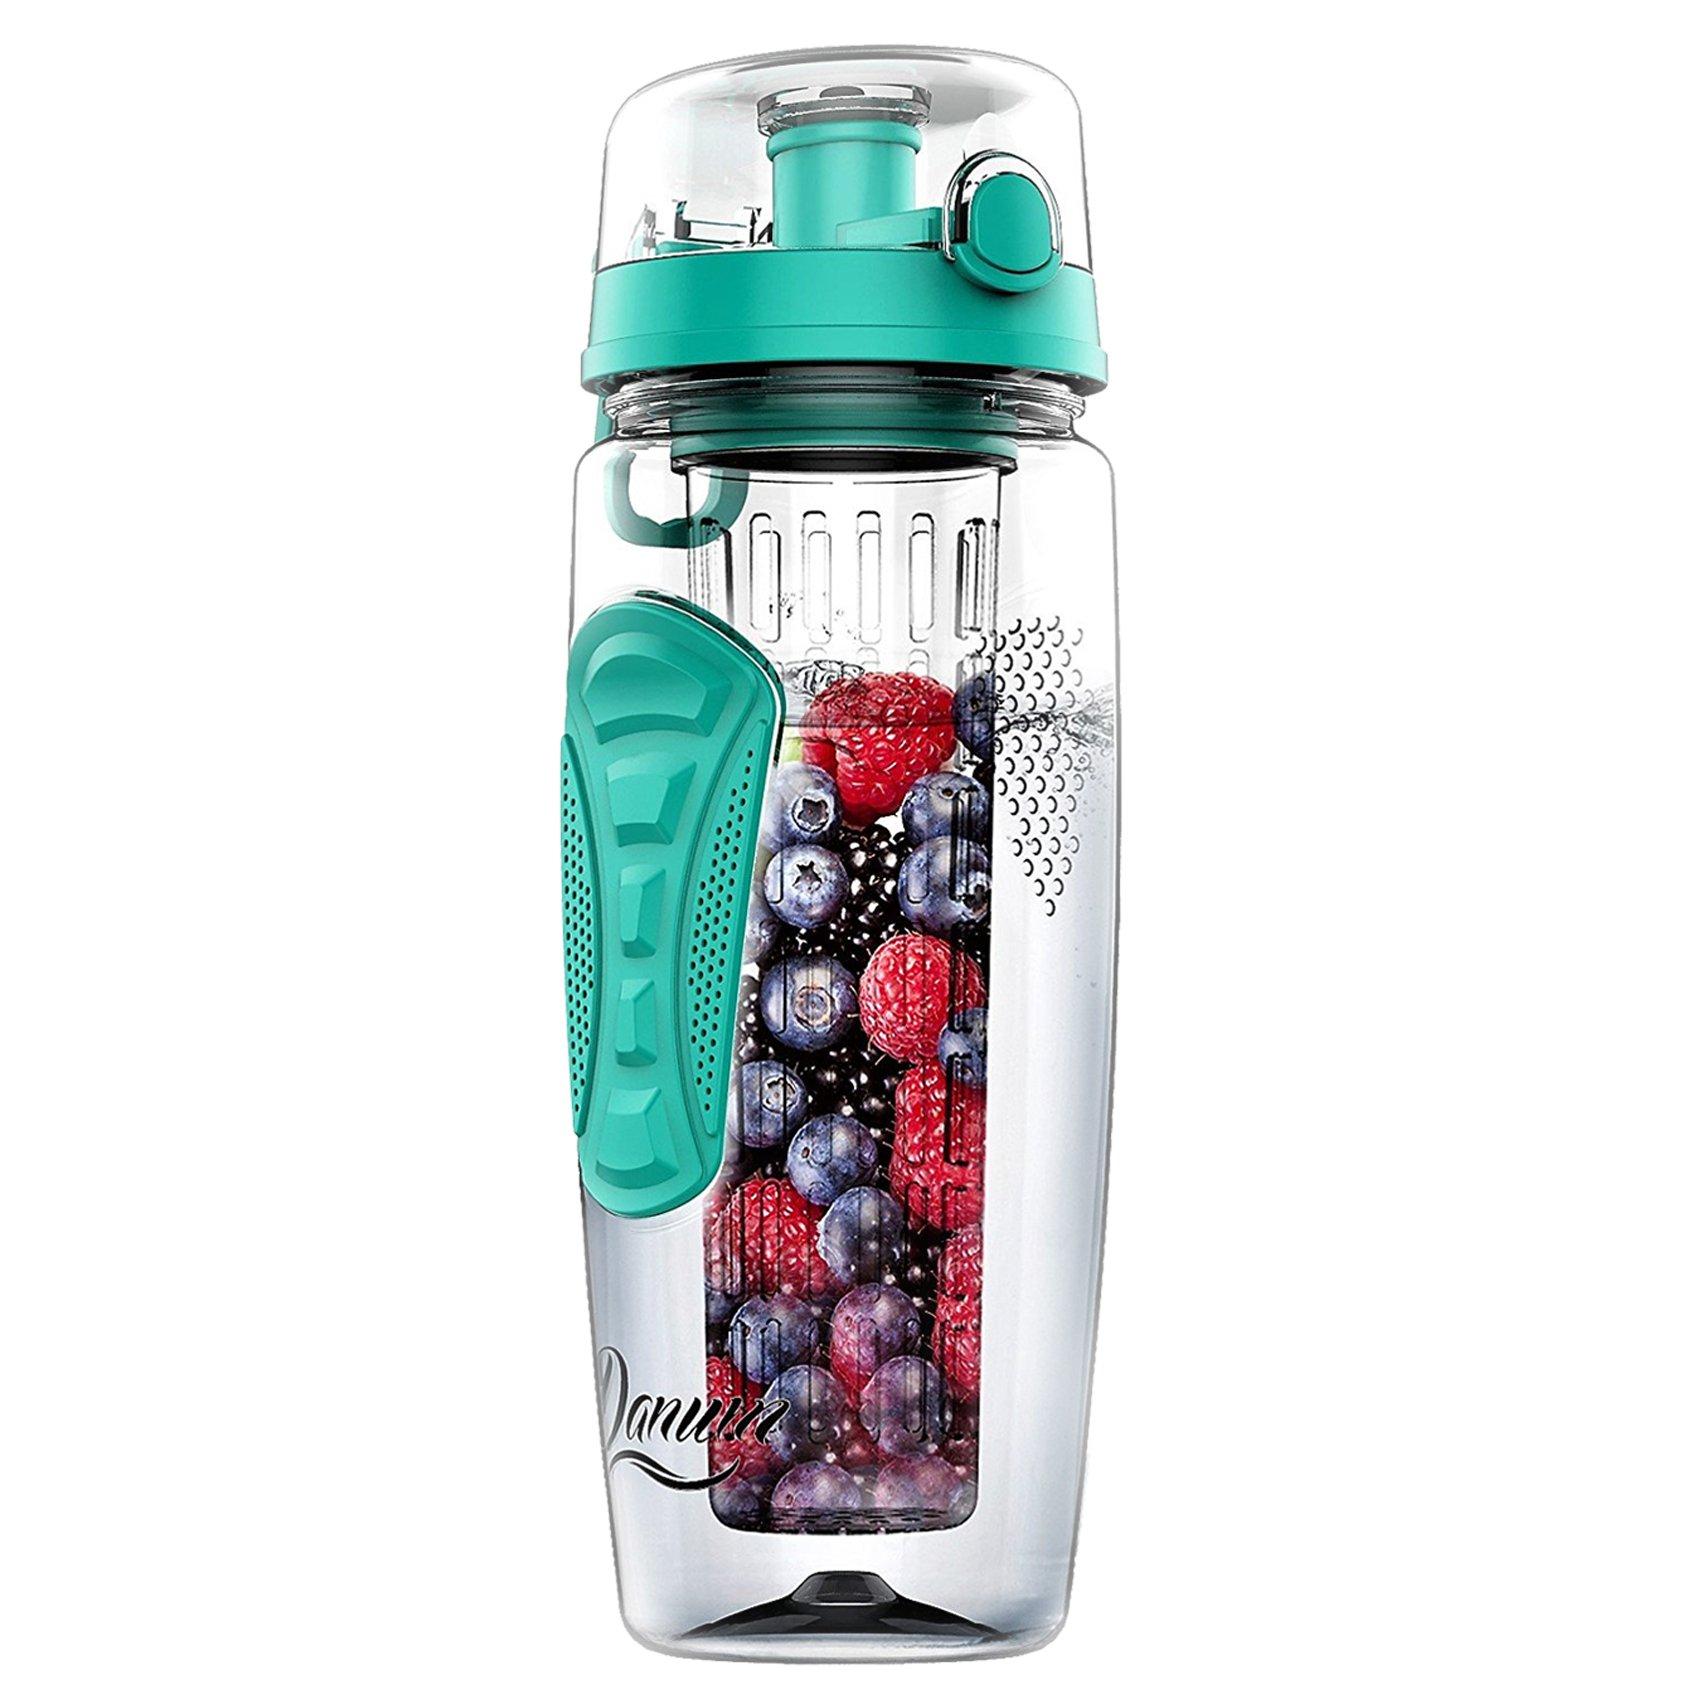 Danum Fruit Infuser Water Bottle Large 32oz by New Full Length Infusion Basket, Leak-proof, Flip-Top, Dual Hand Grips, made of BPA-Free Eastman Tritan with Multiple Color Options & Free Recipe Ebook